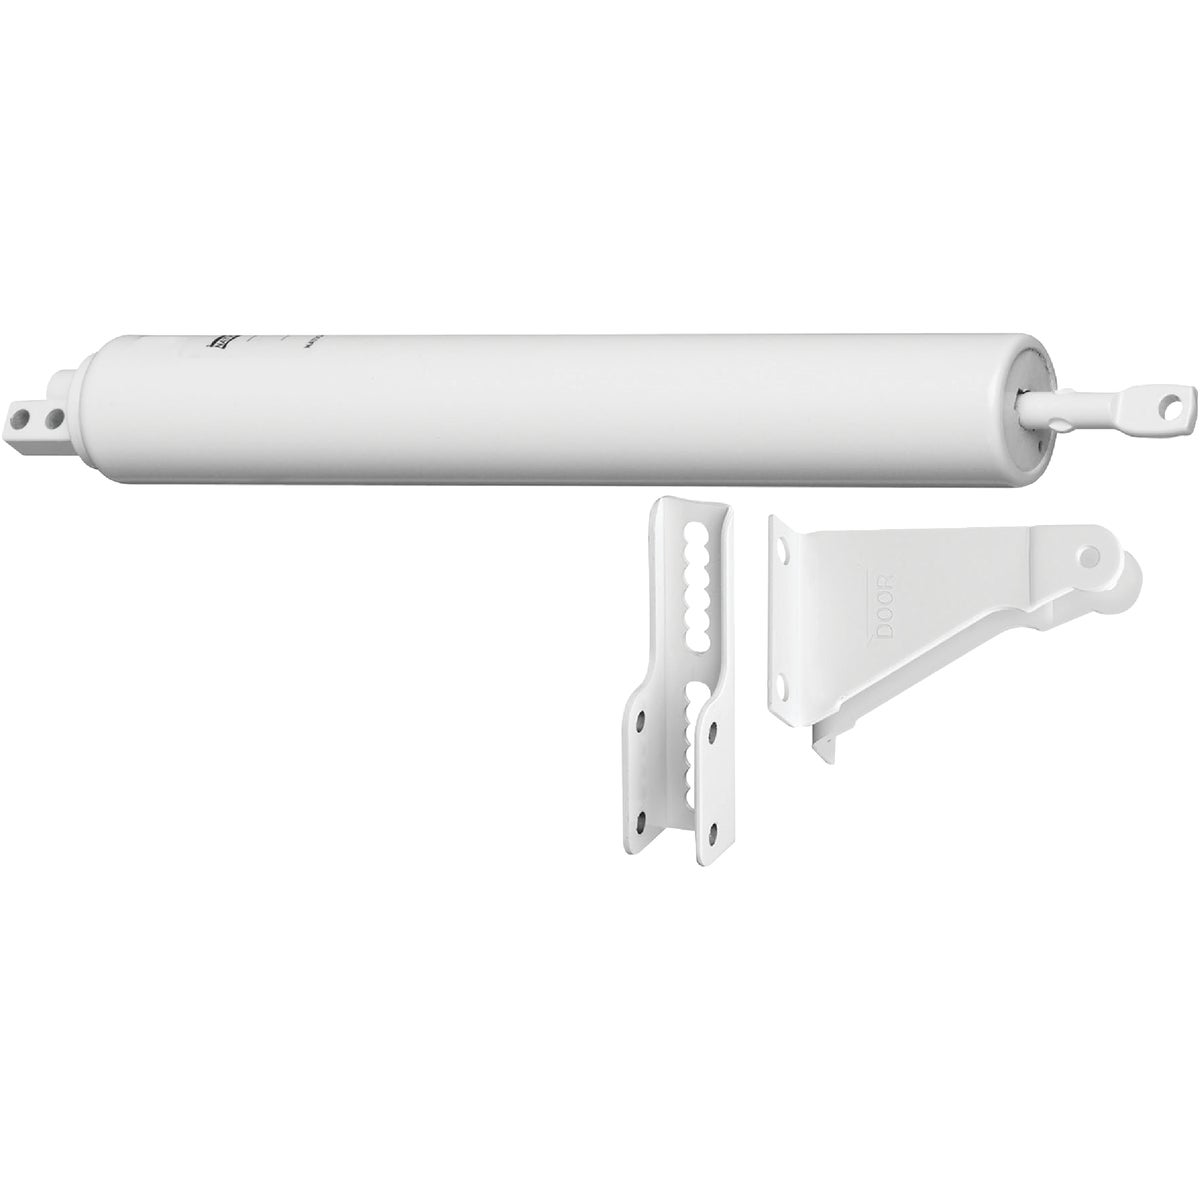 WHT ALUMINUM DOOR CLOSER - V820AWH by Hampton Prod Intl